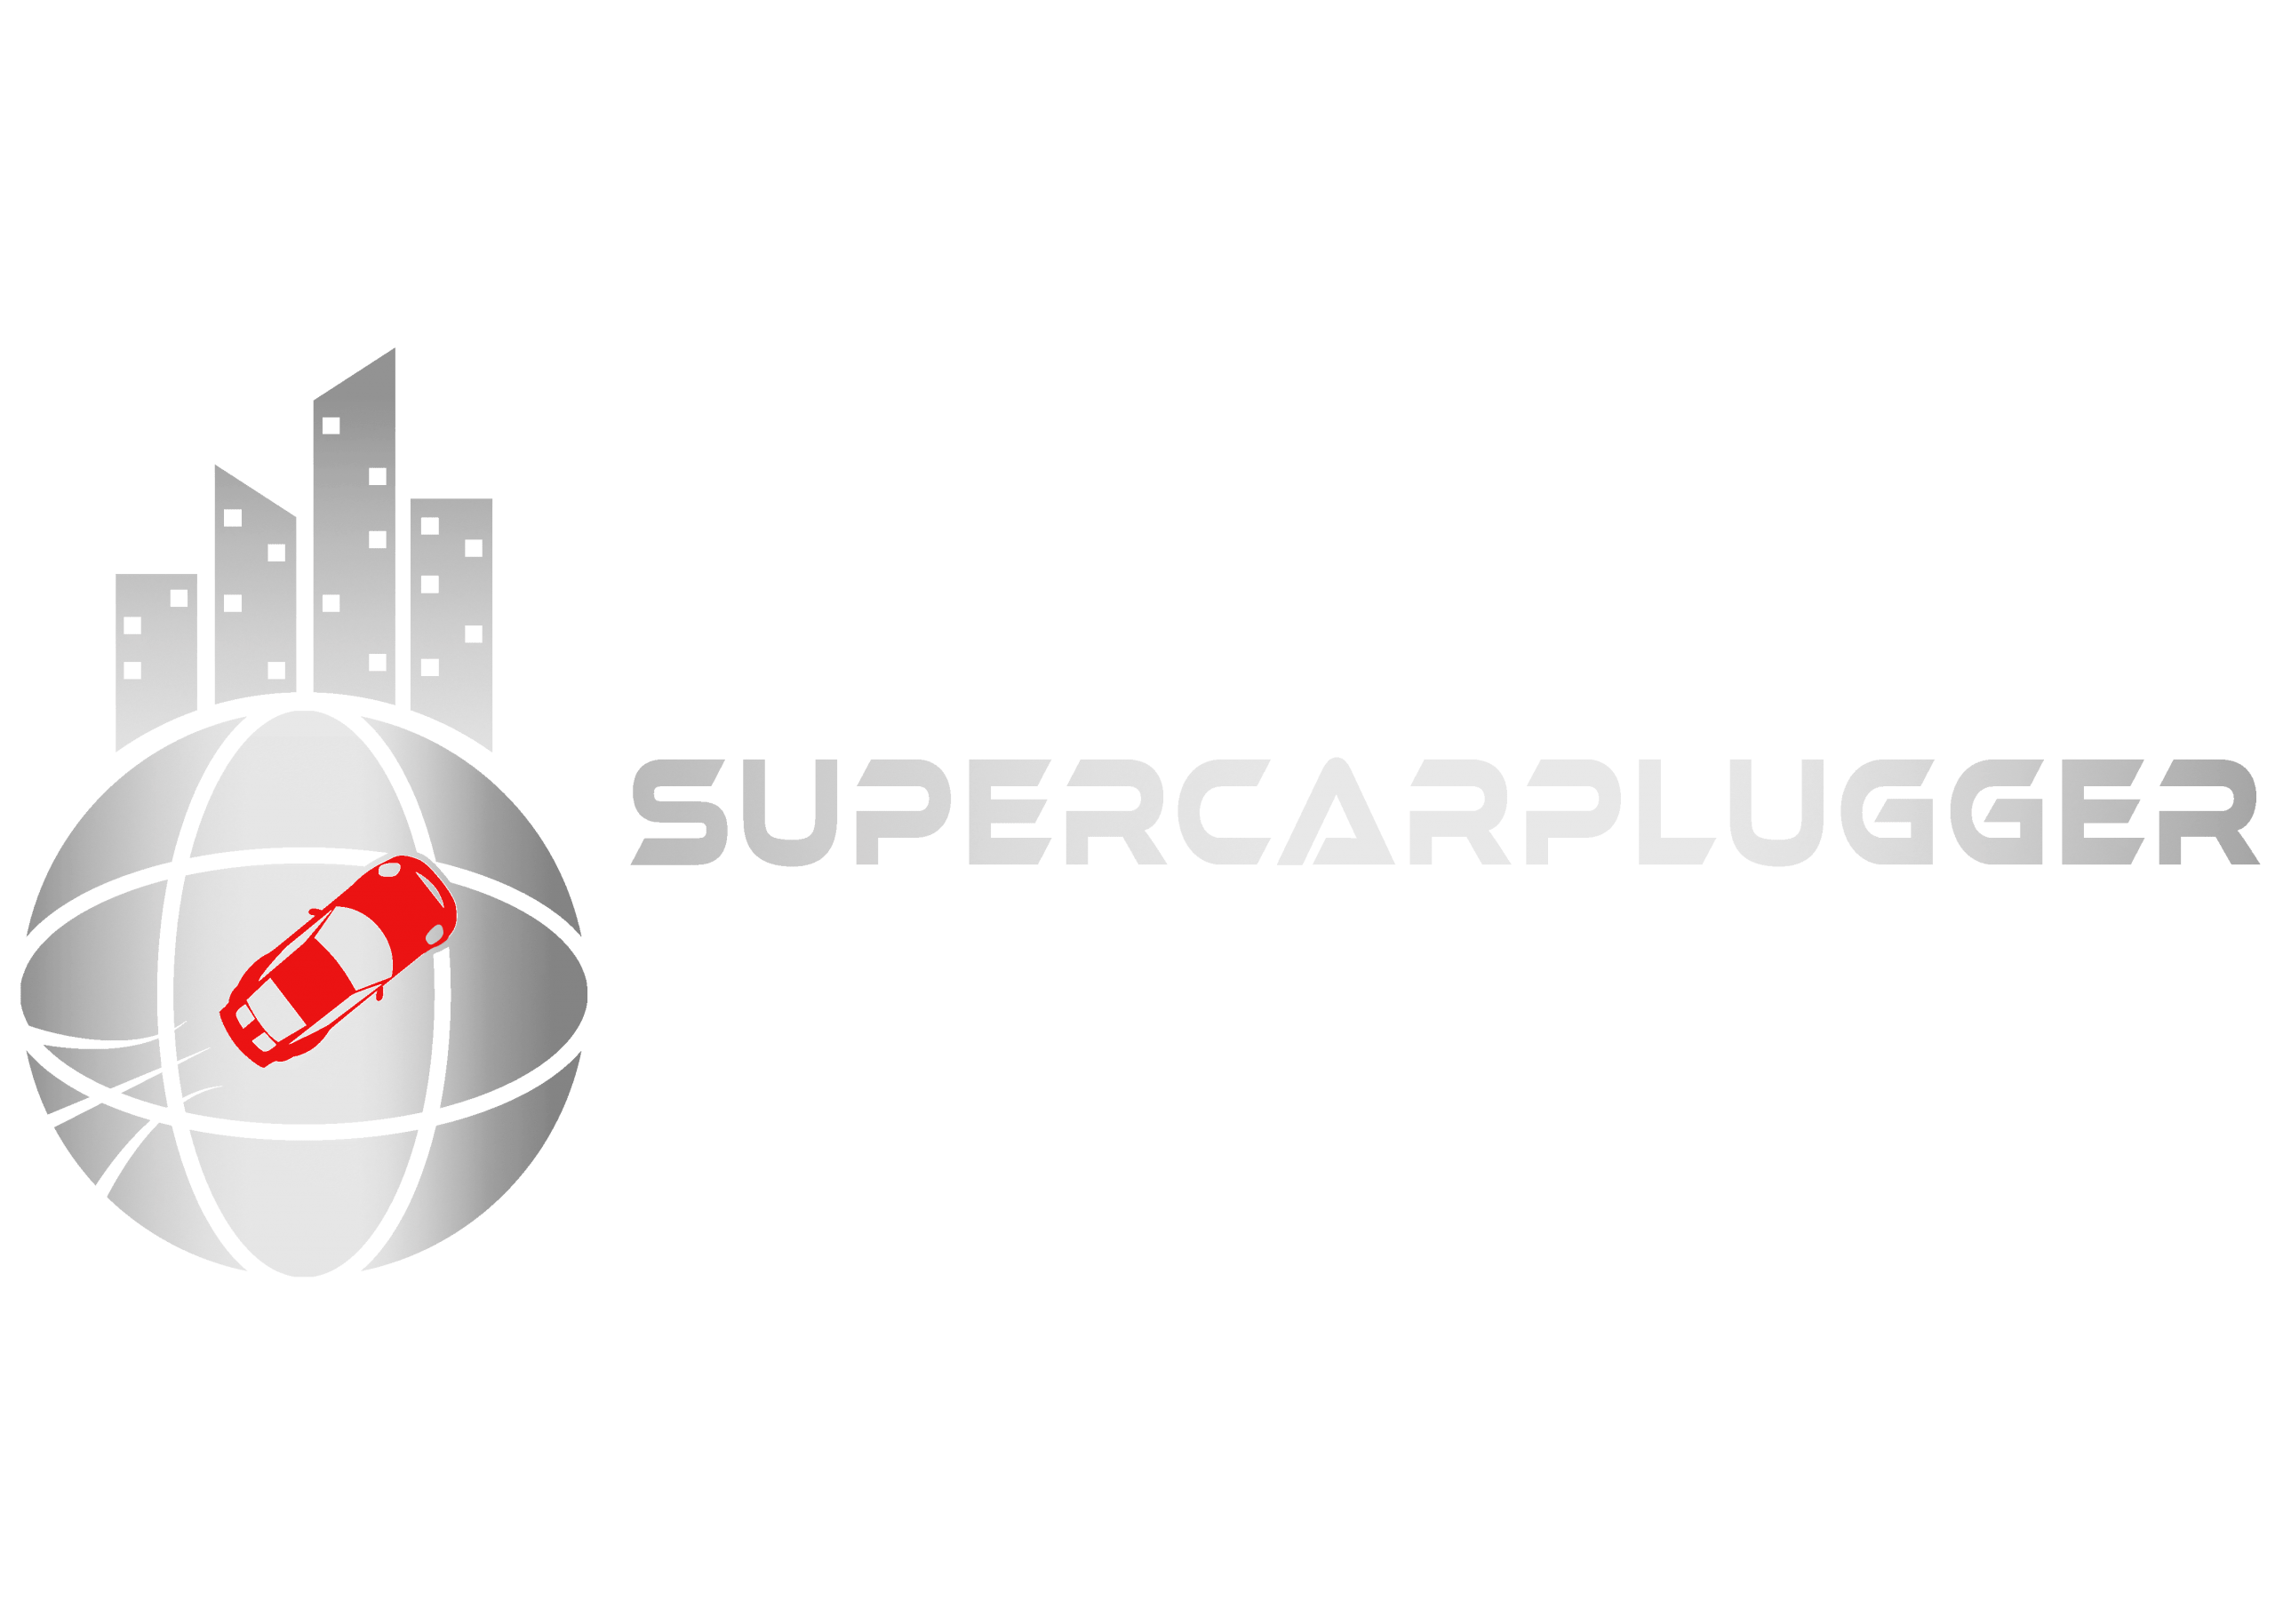 Supercarplugger